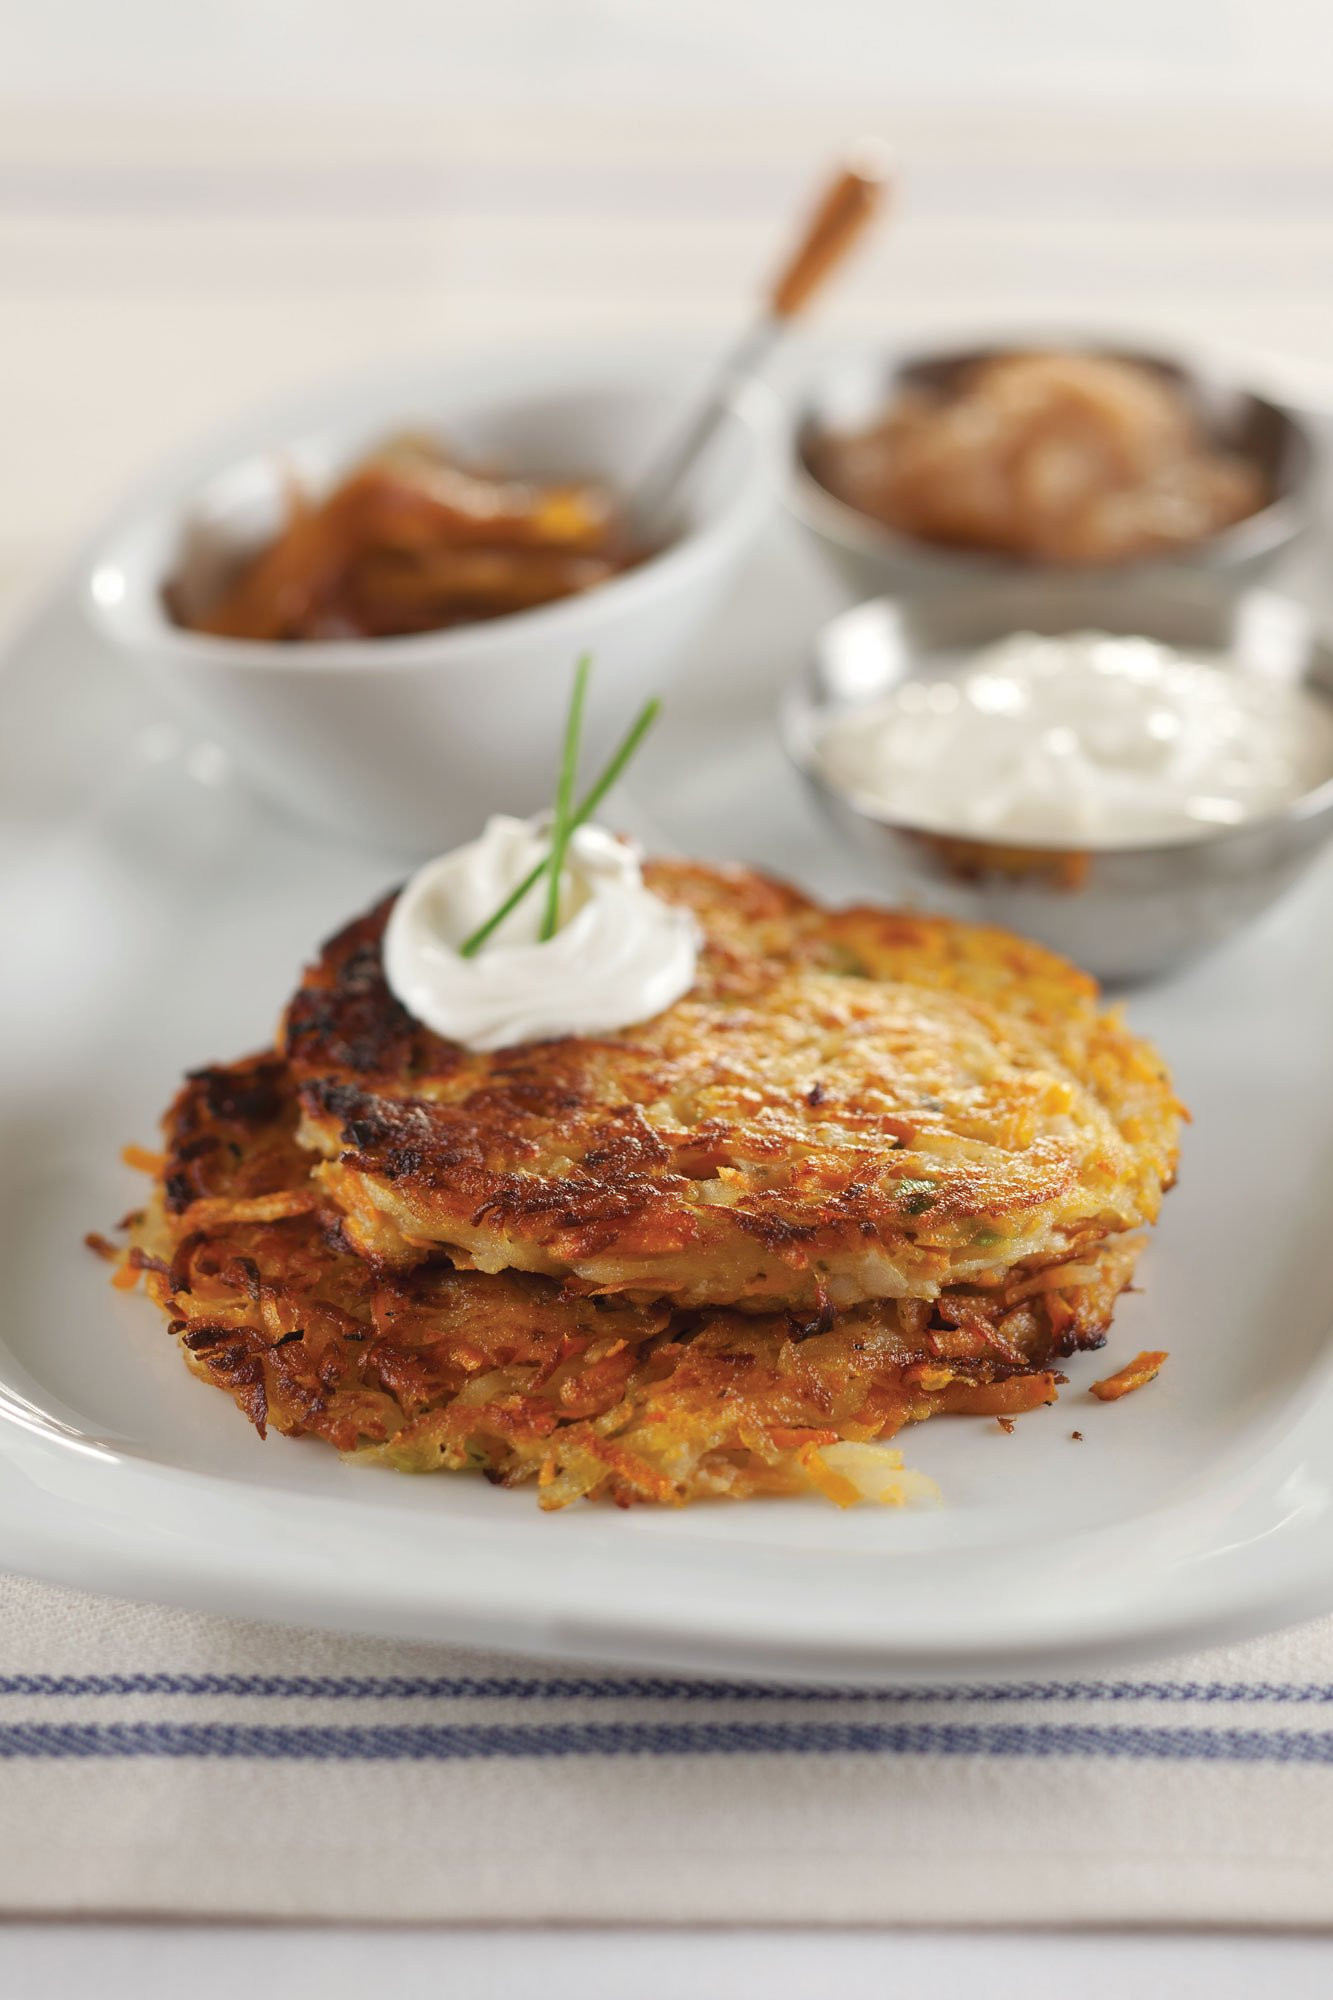 Recipe For Potato Latkes For Hanukkah  A Vegan Sweet Potato Latke Recipe for Hanukkah Vogue